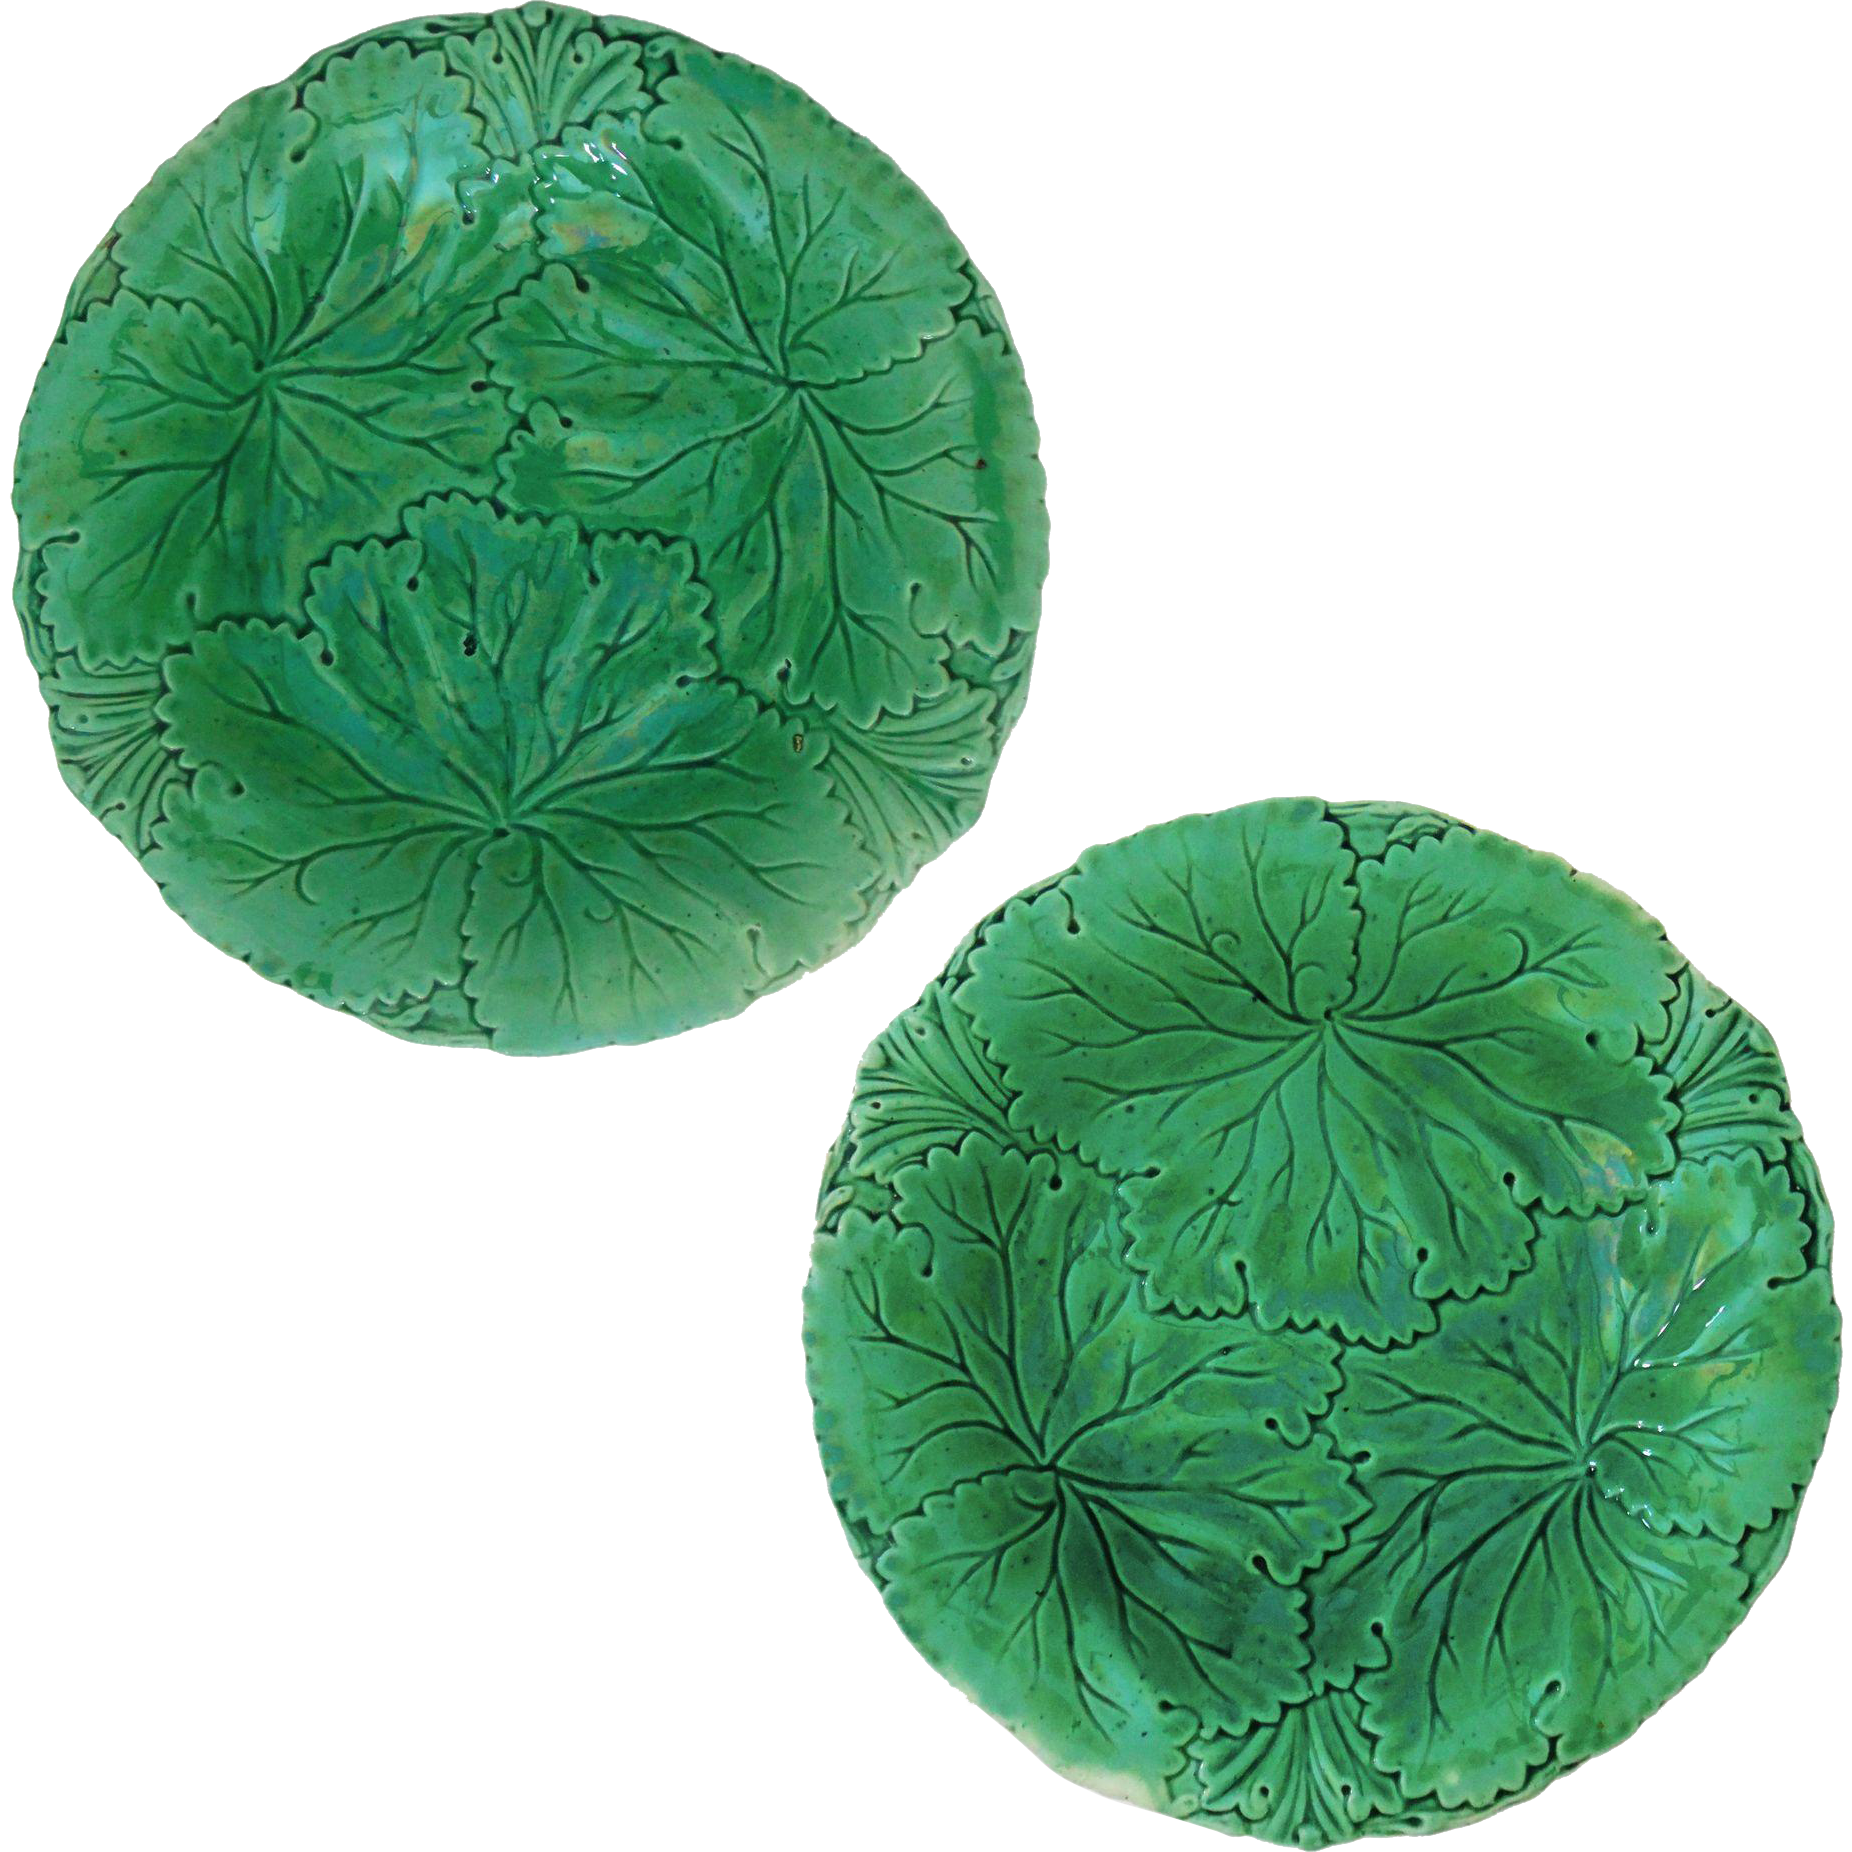 Pair Antique English Majolica Green Leaf Plates Signed Copeland - after 1847, England